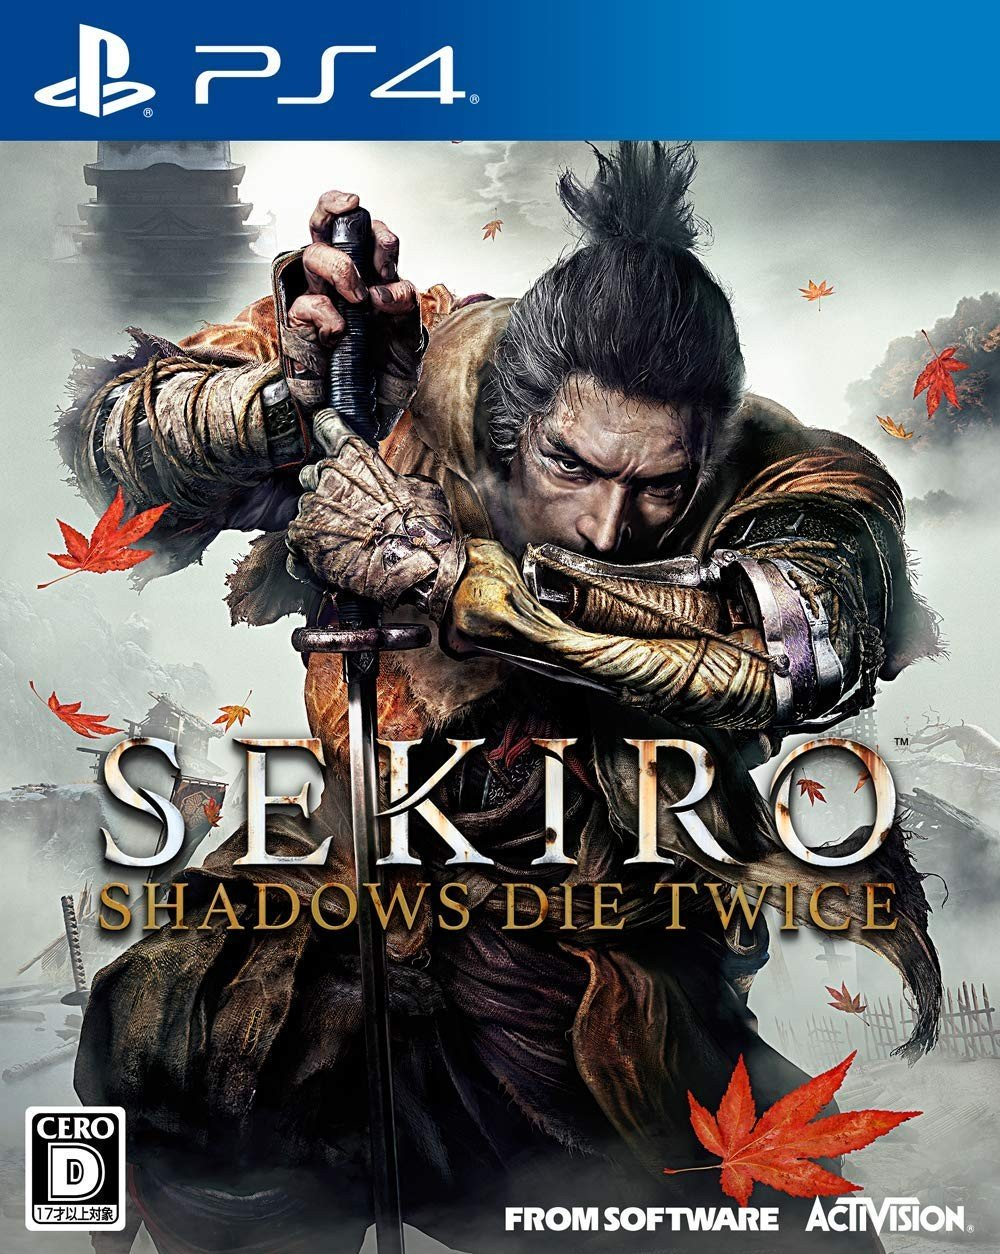 SEKIRO: SHADOWS DIE TWICE 只狼:影逝二度